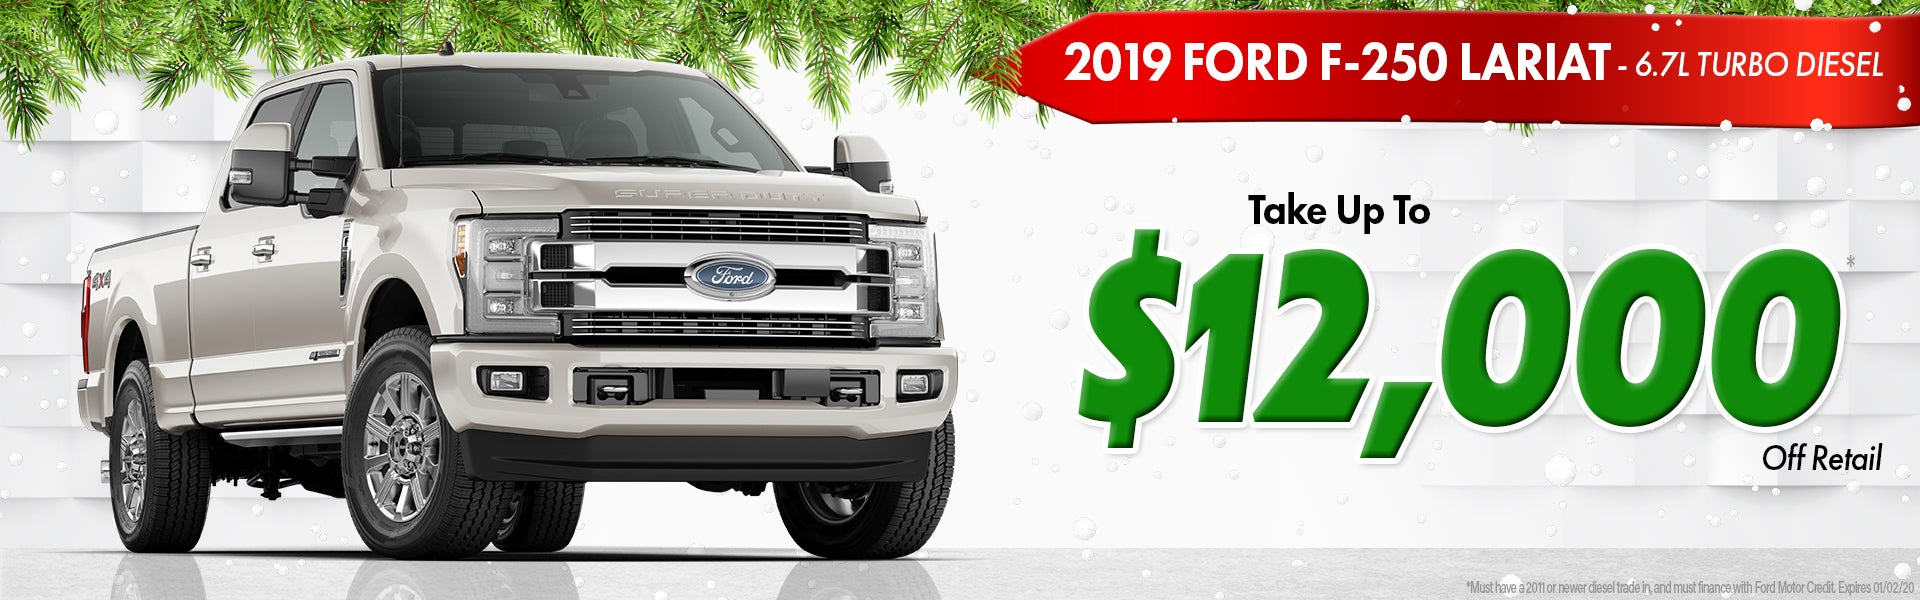 Ford Dealerships In Nc >> Dunn Ford Dealer In Dunn Nc Cary Morrisville Apex Ford